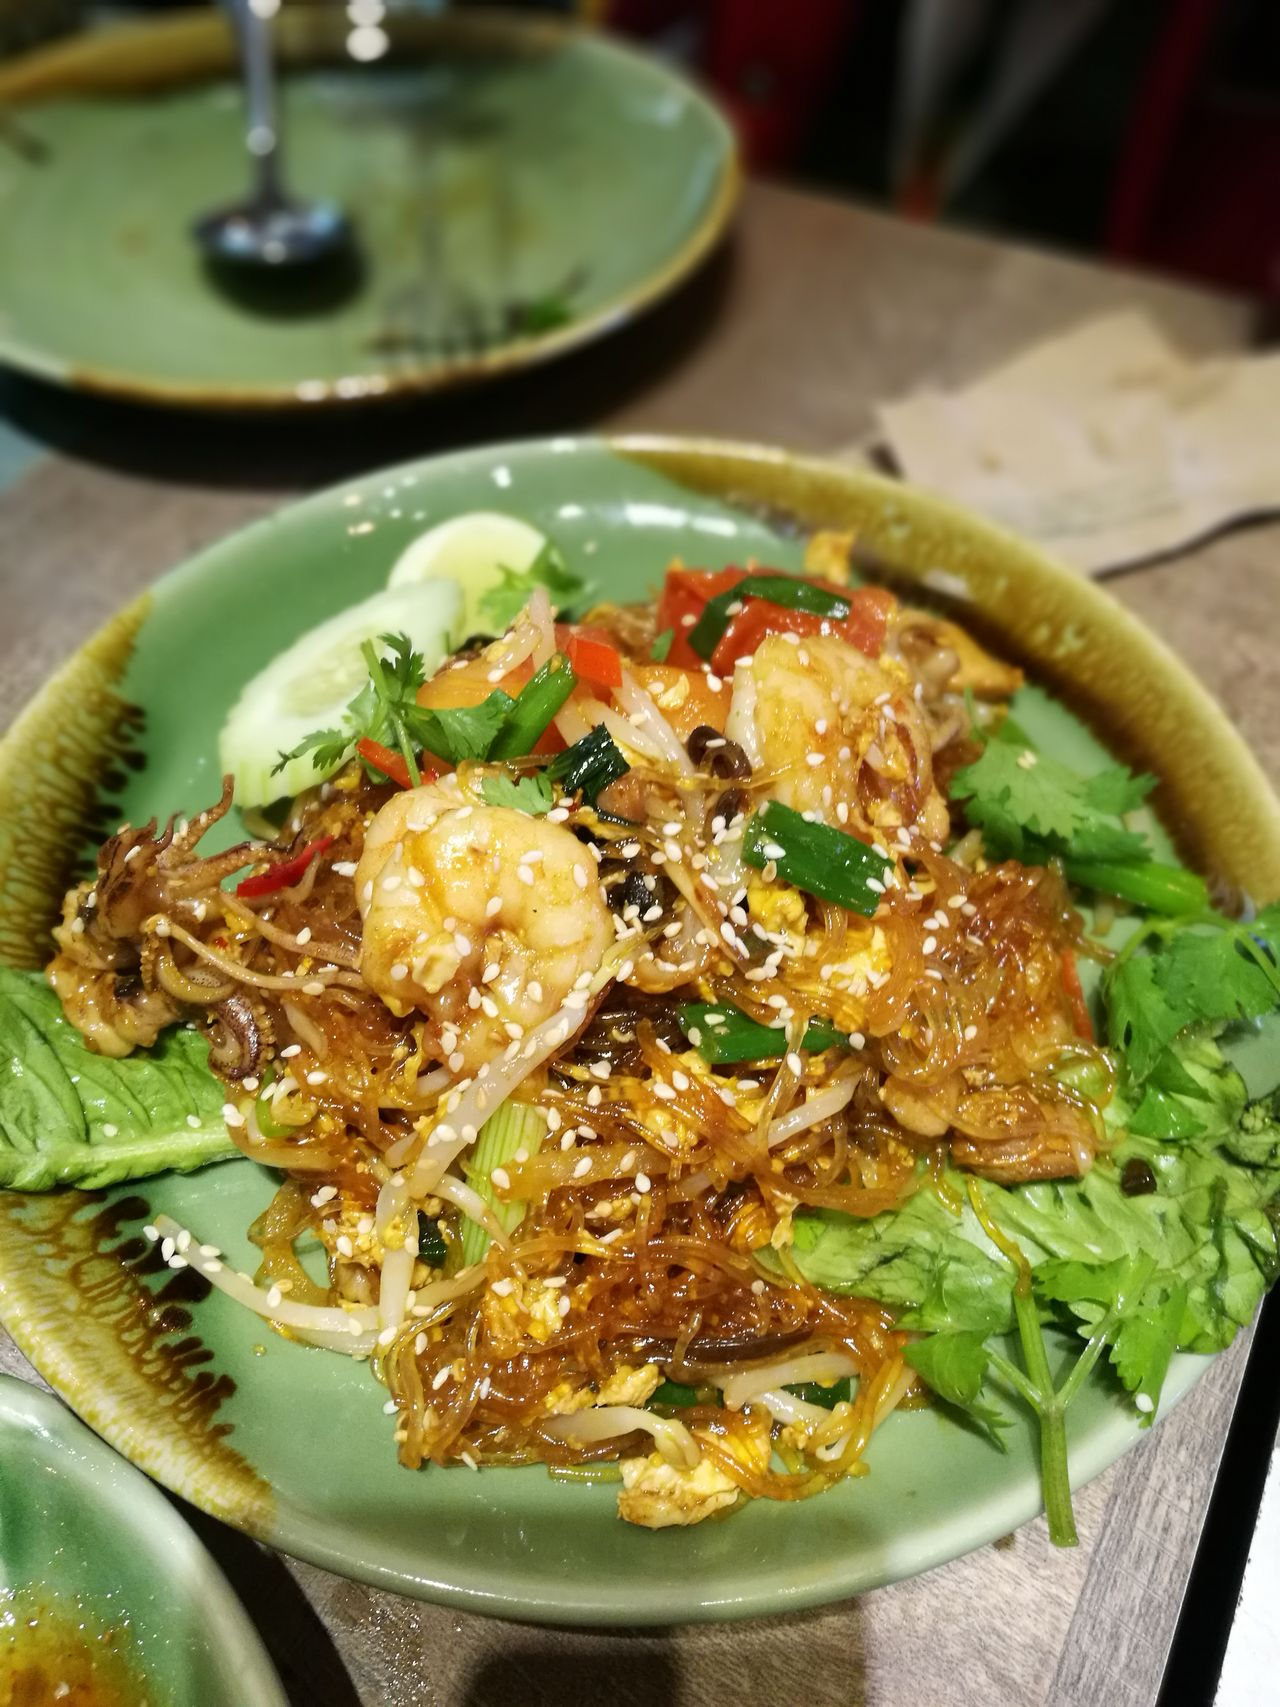 Seafood glass noodles Food Freshness Ready-to-eat Healthy Eating Food And Drink Indoors  Plate Close-up No People Homemade Day Glassnoodles Seafood Lovers SEAFOOD🐡 Thai Food